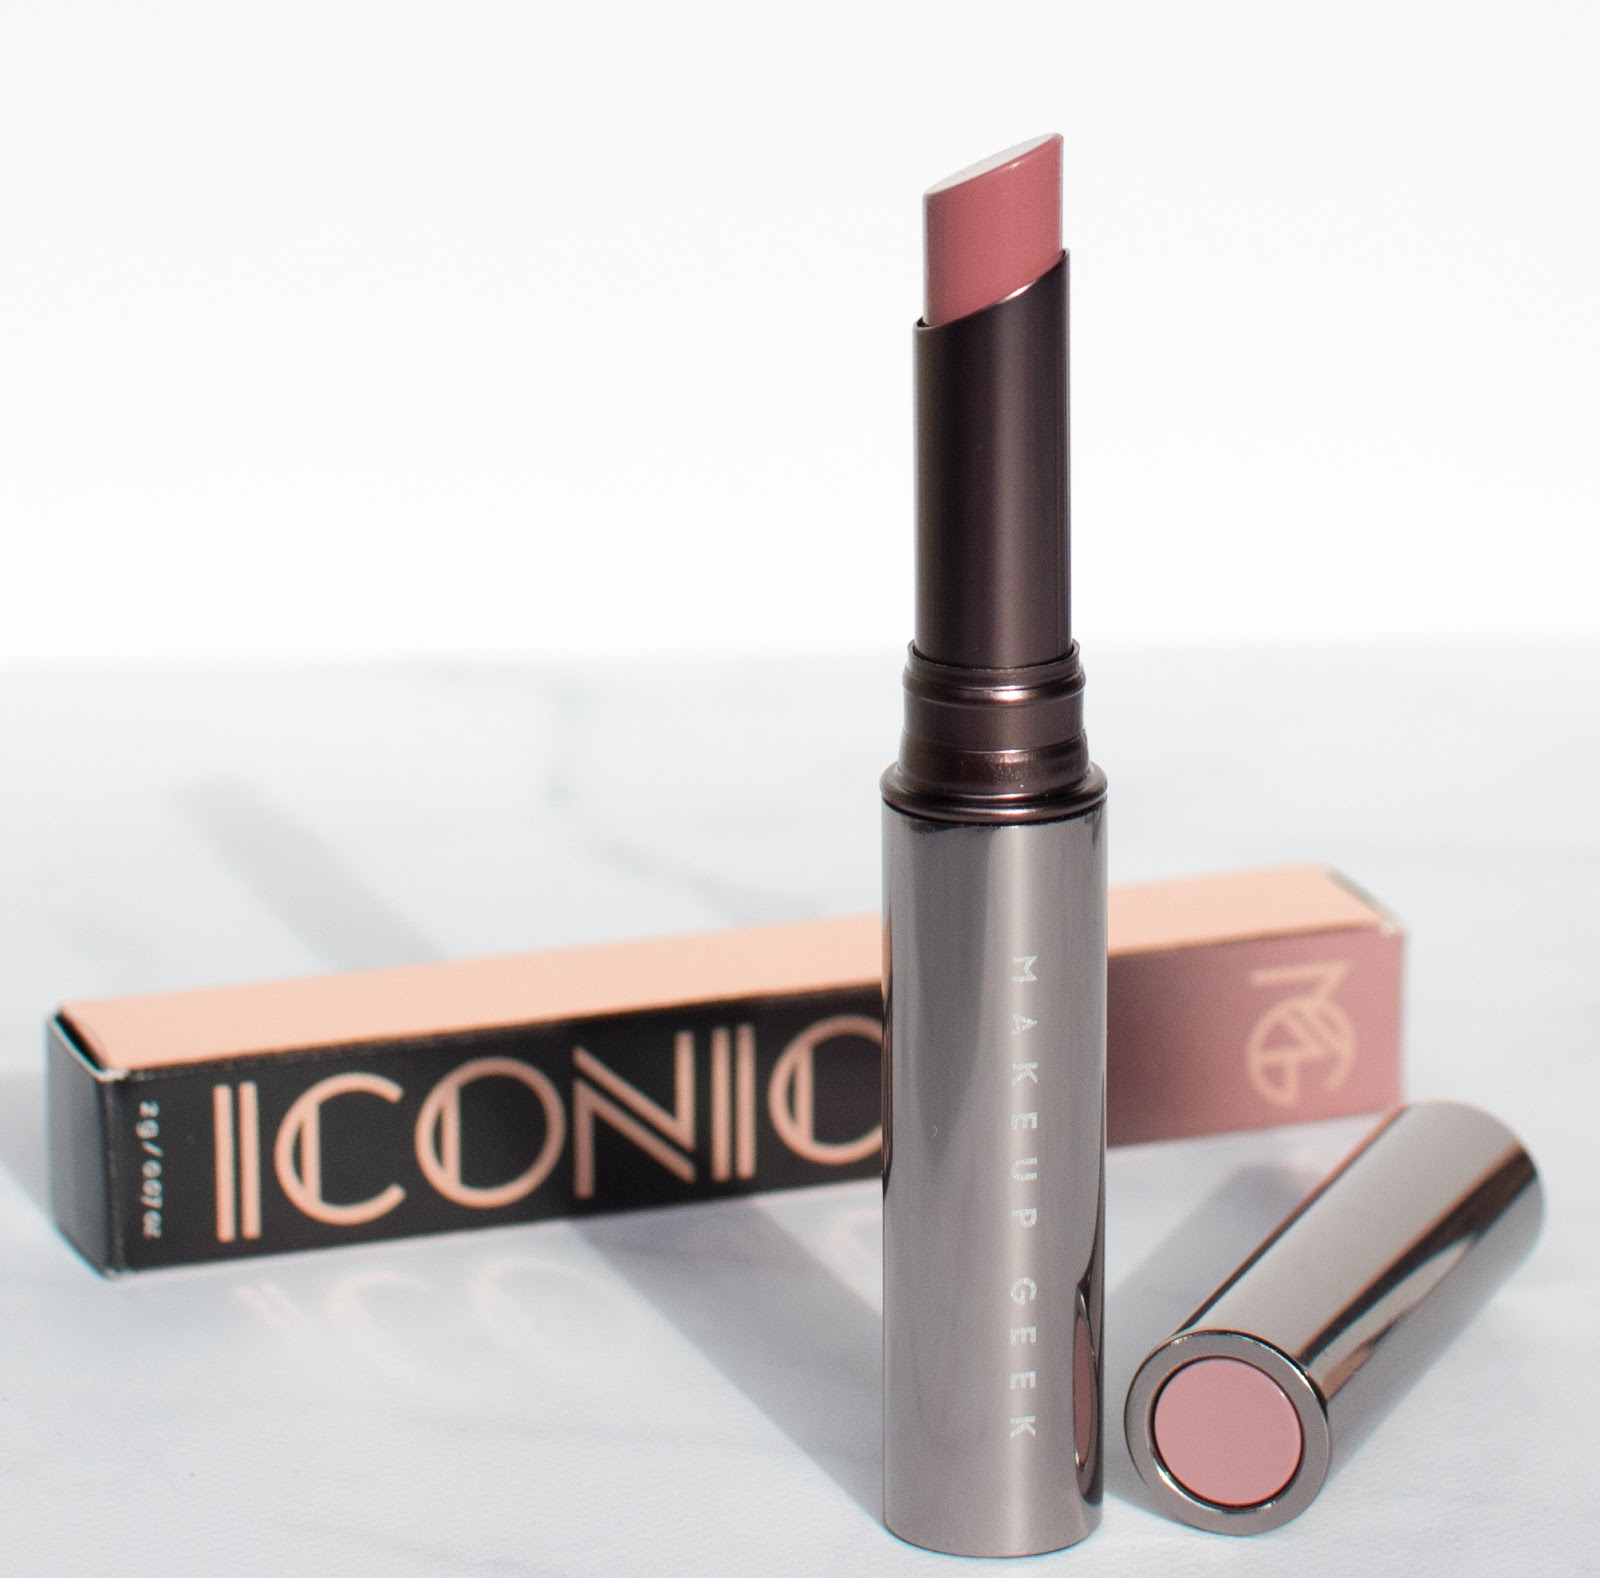 Makeup Geek Iconic Lipstick